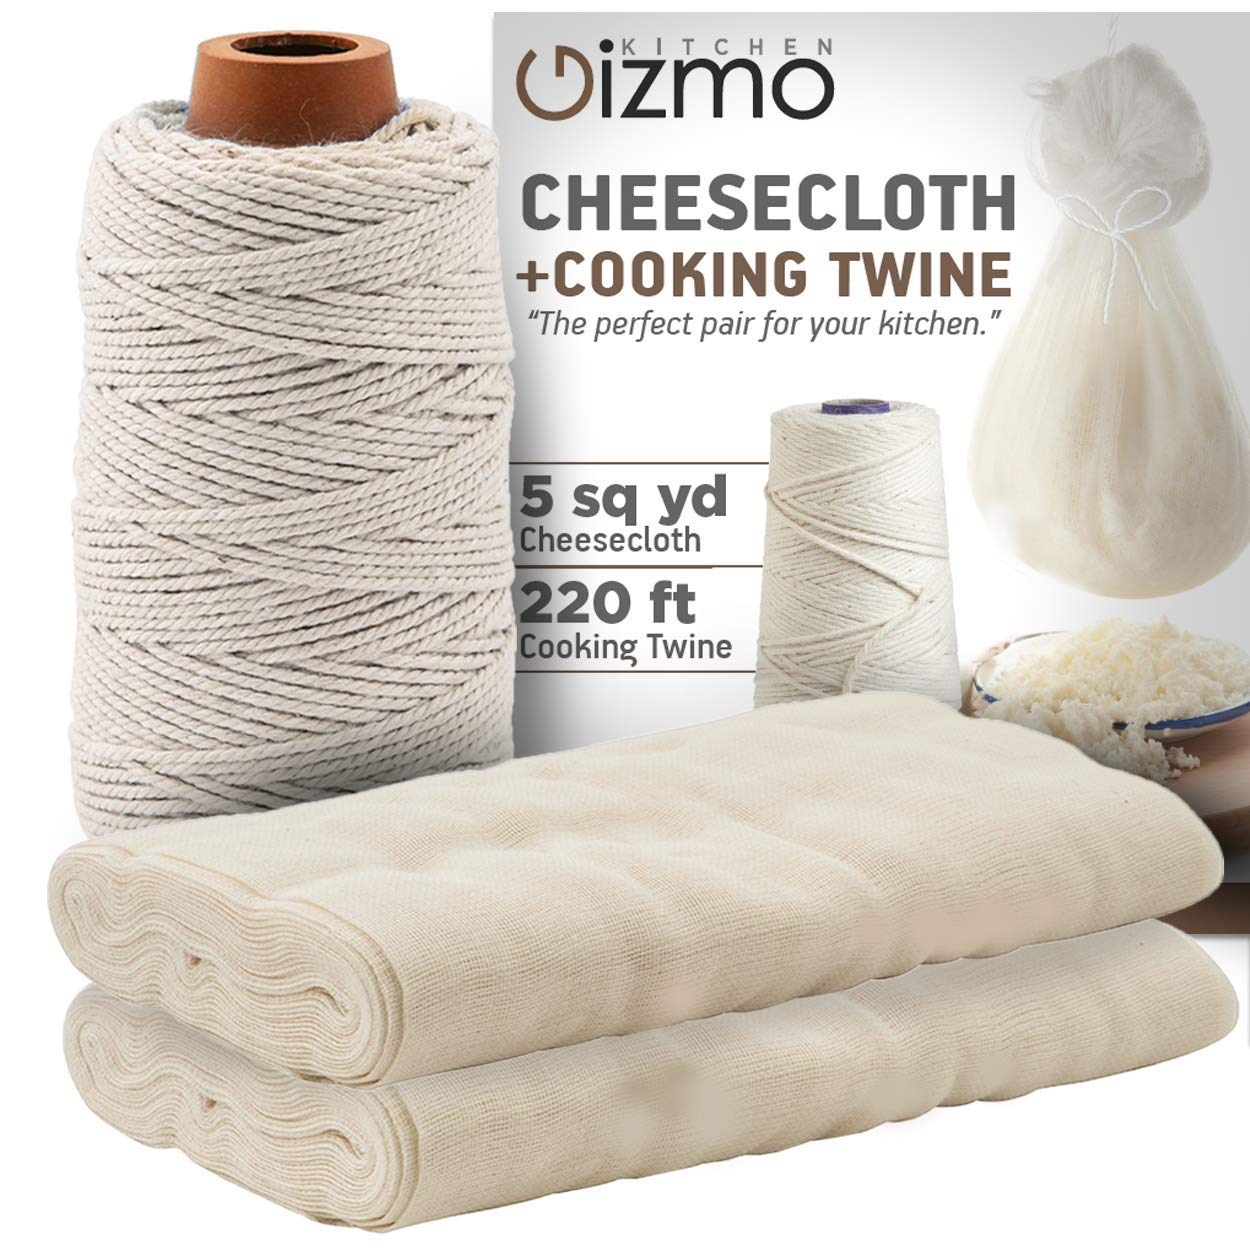 Cheesecloth and Cooking Twine - by Kitchen Gizmo, Grade 50 100% Unbleached Cotton (5 Yards/45 Sq. Feet) Cheese Cloth for Straining with 220 Ft Butchers Twine by Kitchen Gizmo